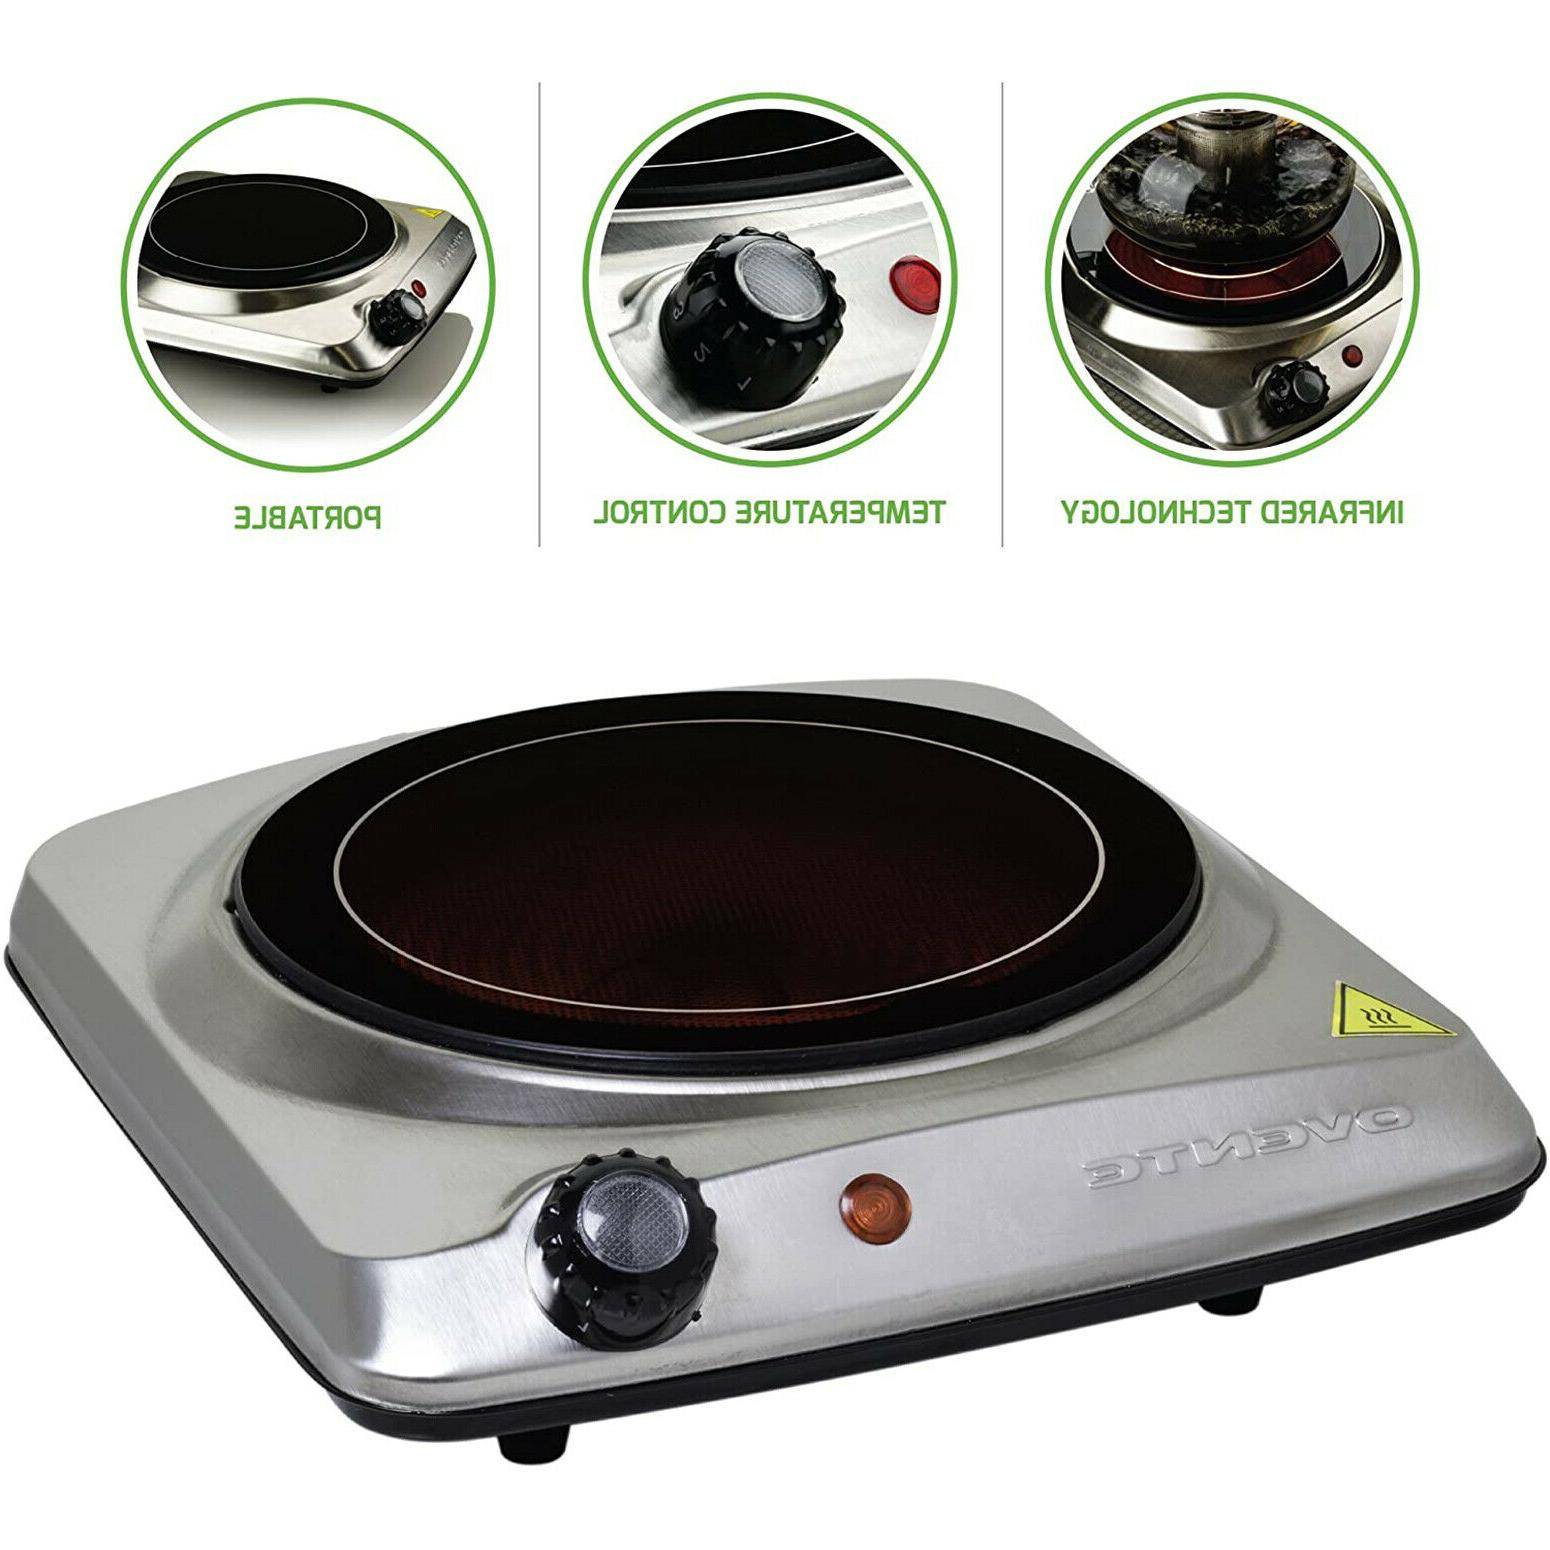 portable electric cooktop burner infrared 1000w single